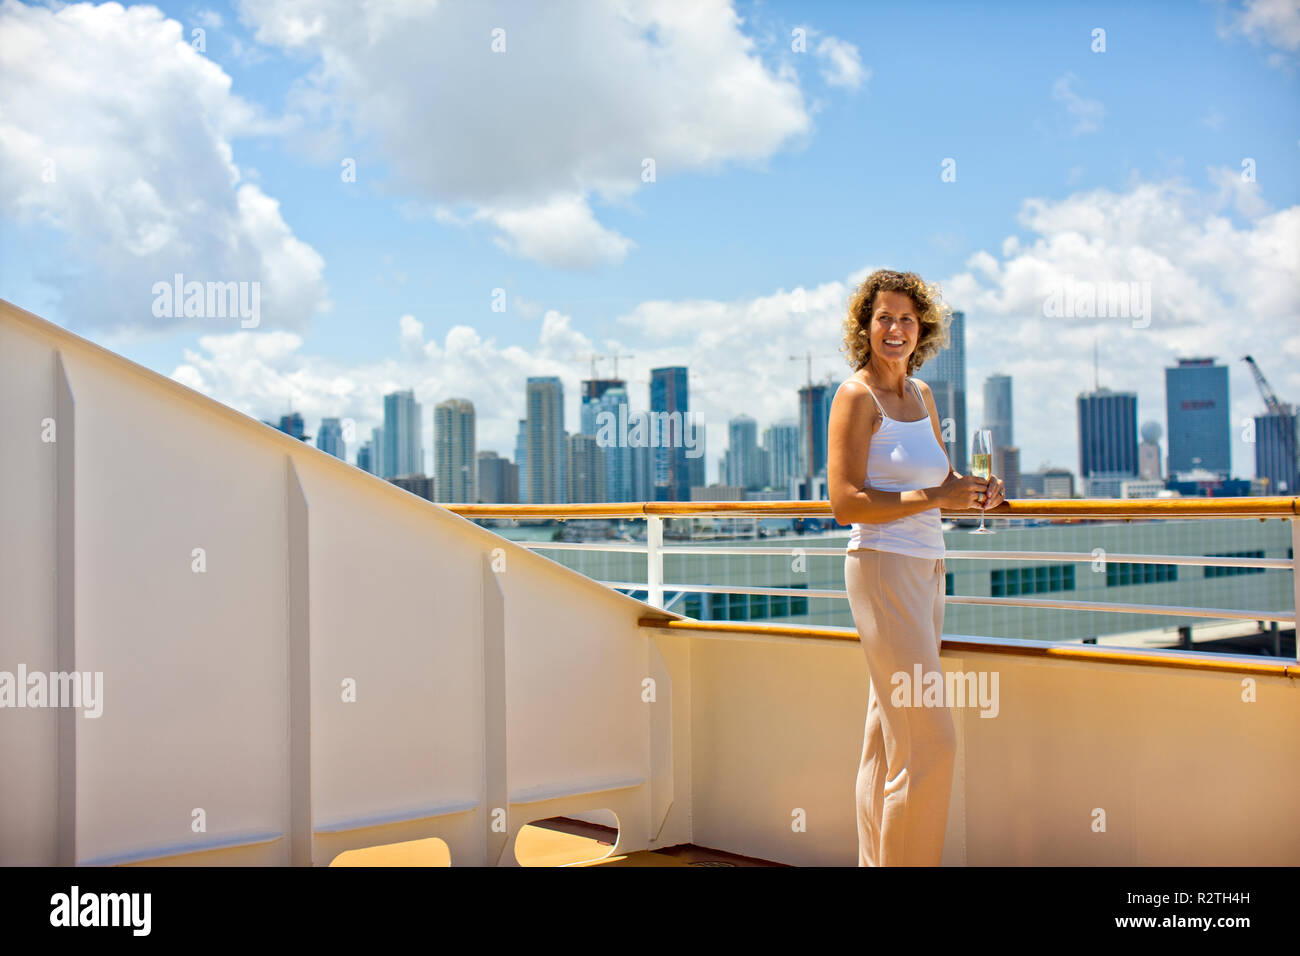 Middle aged woman standing on deck of cruise ship. Stock Photo